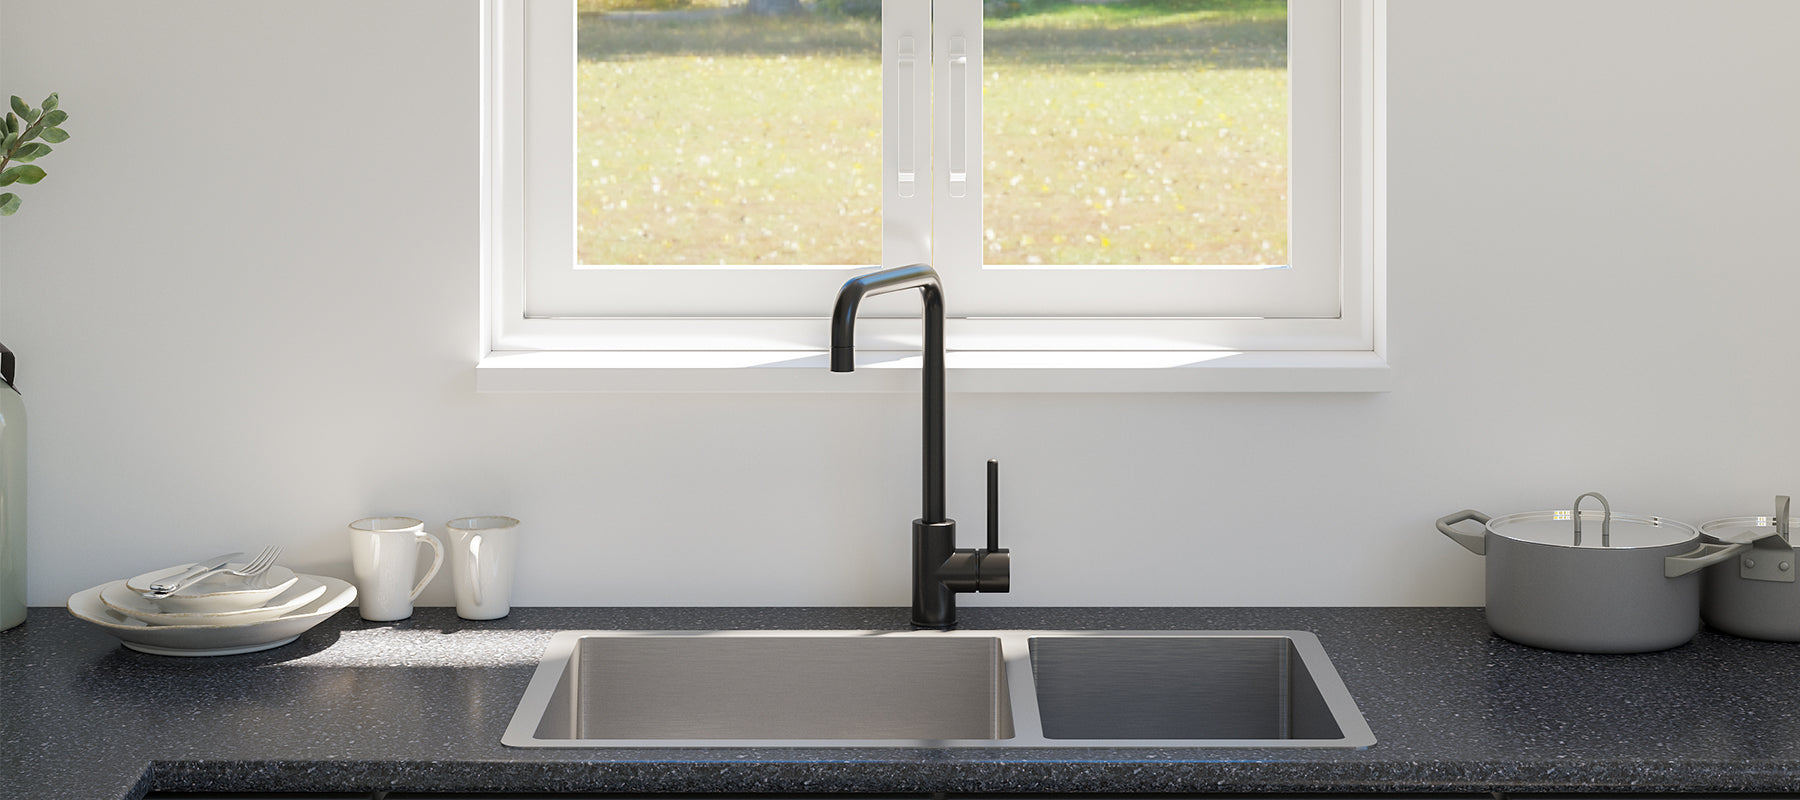 Undermount or Topmount Sinks - Which should you choose?